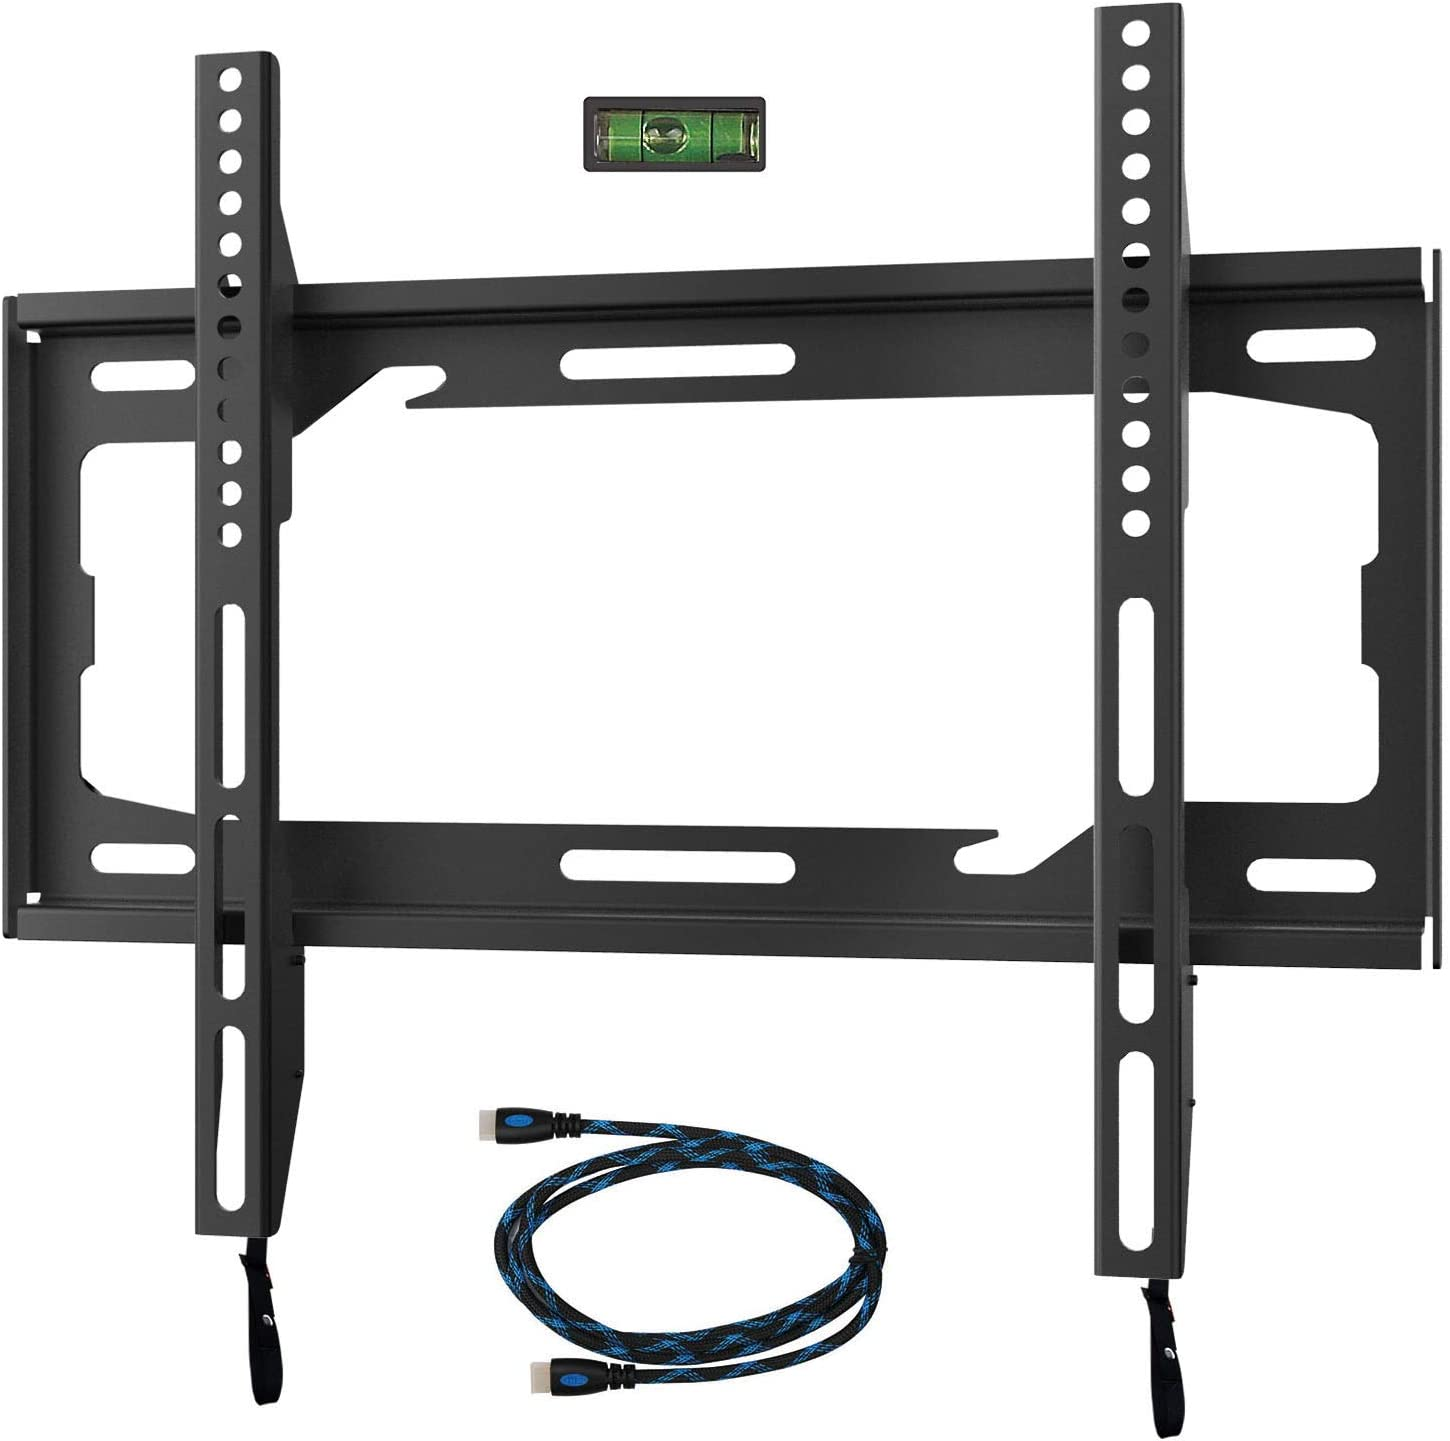 Wali Tv Wall Mount Bracket For Most 26 55 Inch Led Lcd And Plasma Flat Screen Tvs Vesa Up To 400x400mm 99lbs 45kg Weight Capacity Ttm 1b Black Electronics